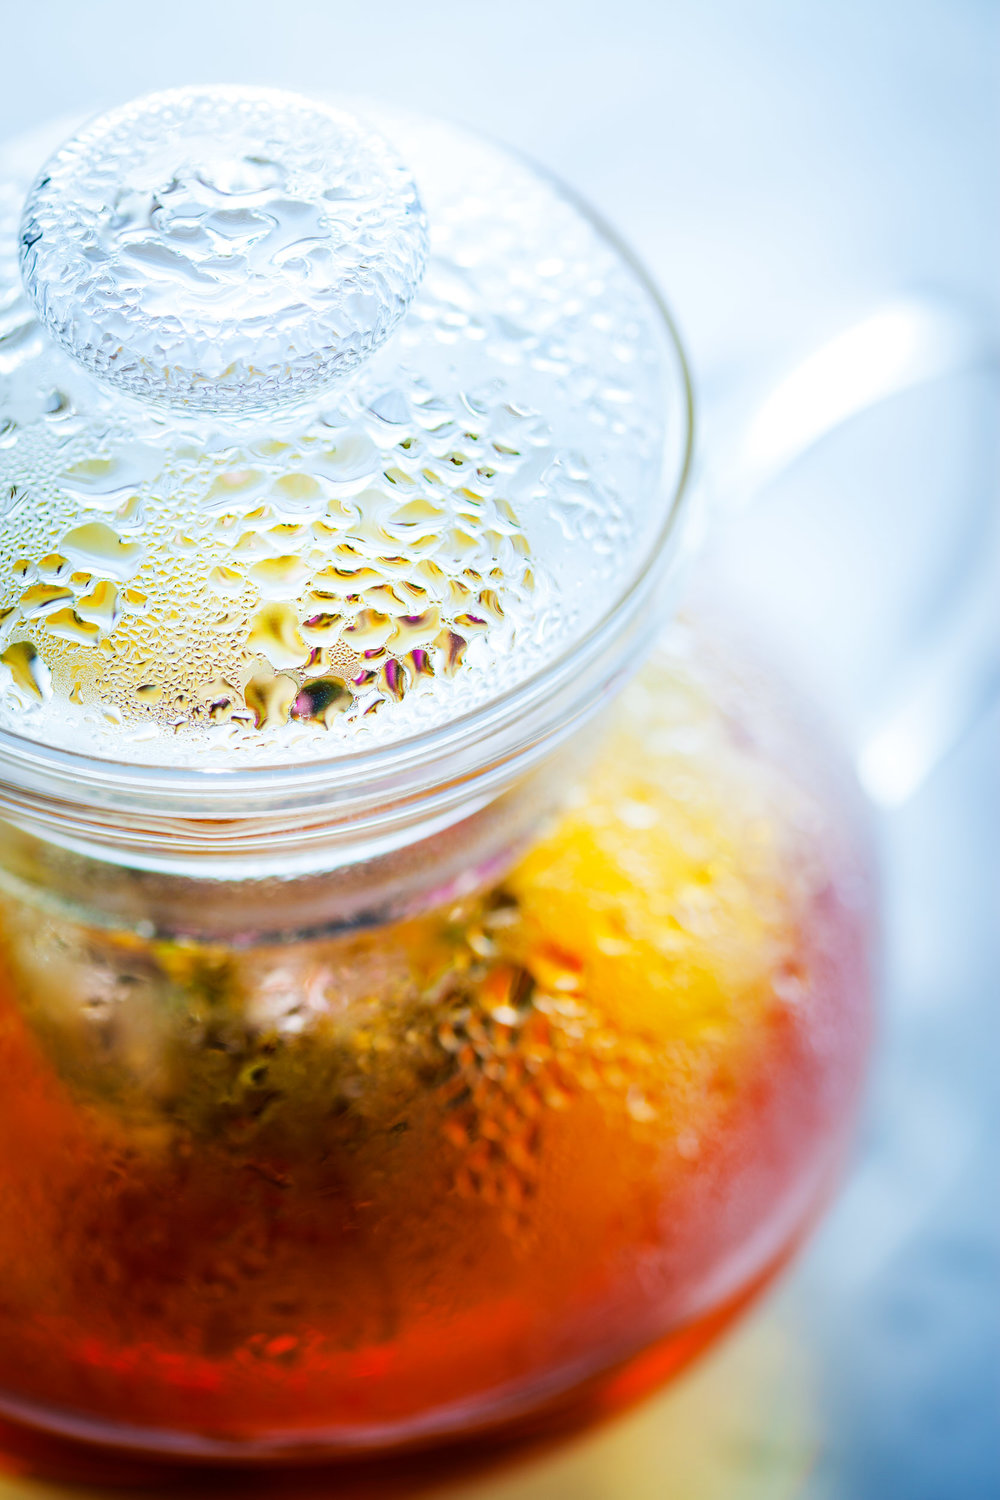 food-tea-pot-condensation-lesliegrow.jpg